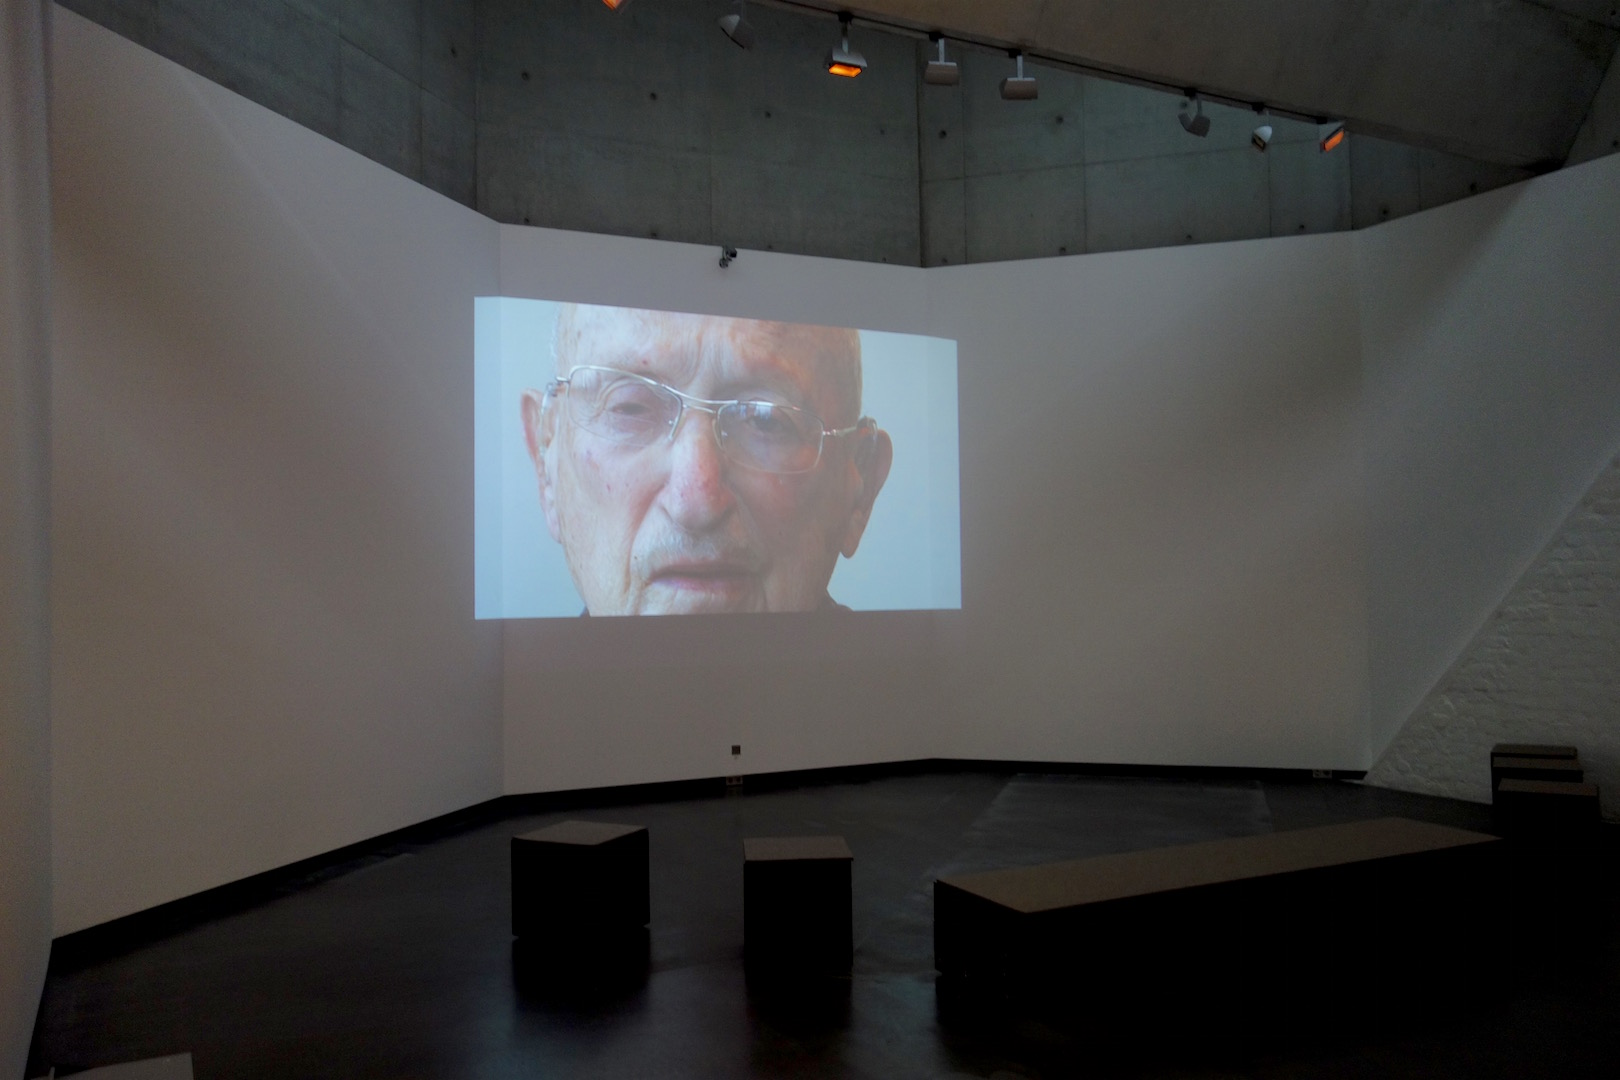 Second Floor Video Gallery, Kunsthalle St. Annen